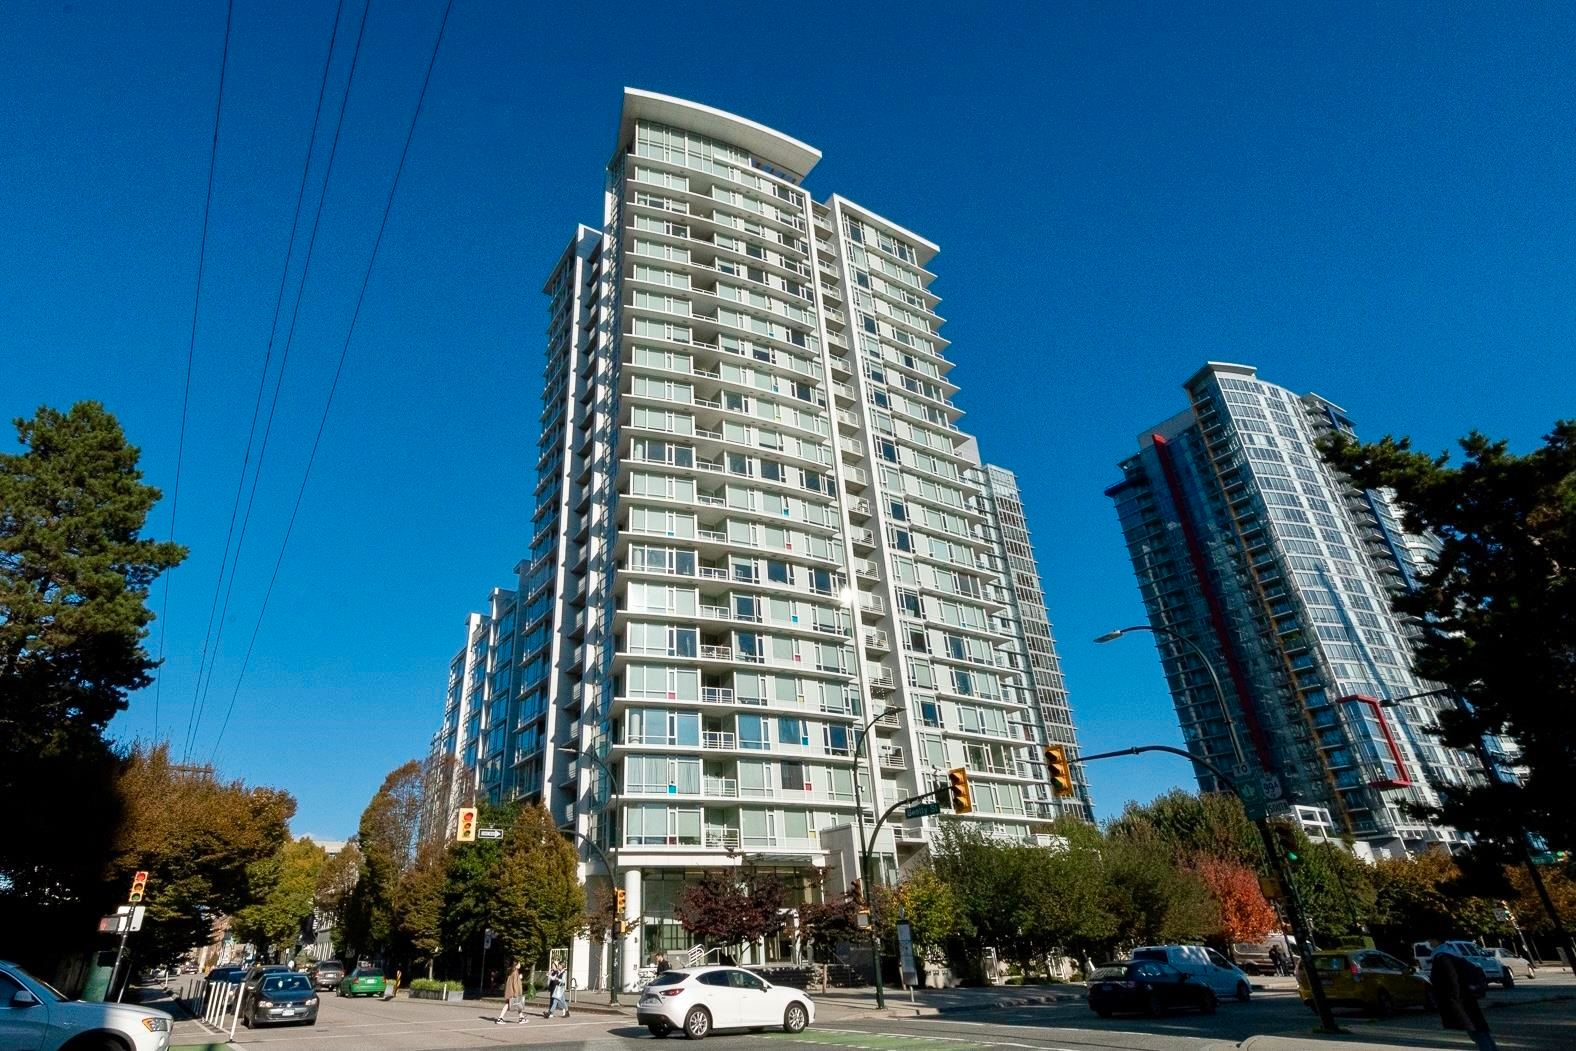 """Main Photo: 1809 161 W GEORGIA Street in Vancouver: Downtown VW Condo for sale in """"COSMO"""" (Vancouver West)  : MLS®# R2624966"""